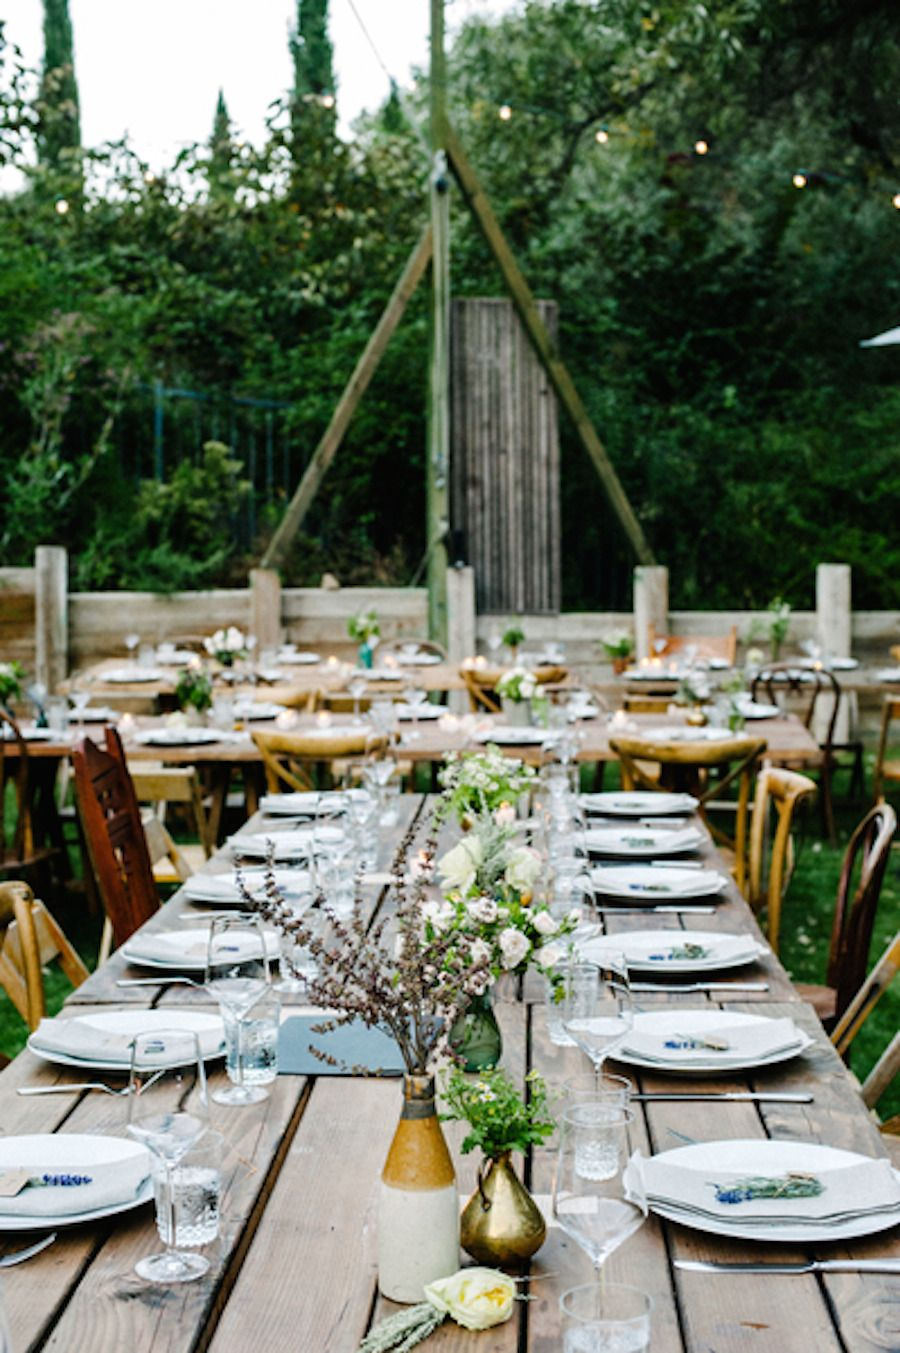 #place-settings, #tablescapes, #outdoor-dinner-party  Photography: Amy/Docuvitae - www.docuvitae.com/  Read More: http://www.stylemepretty.com/2014/11/05/boho-al-fresco-wedding-in-topanga-canyon/